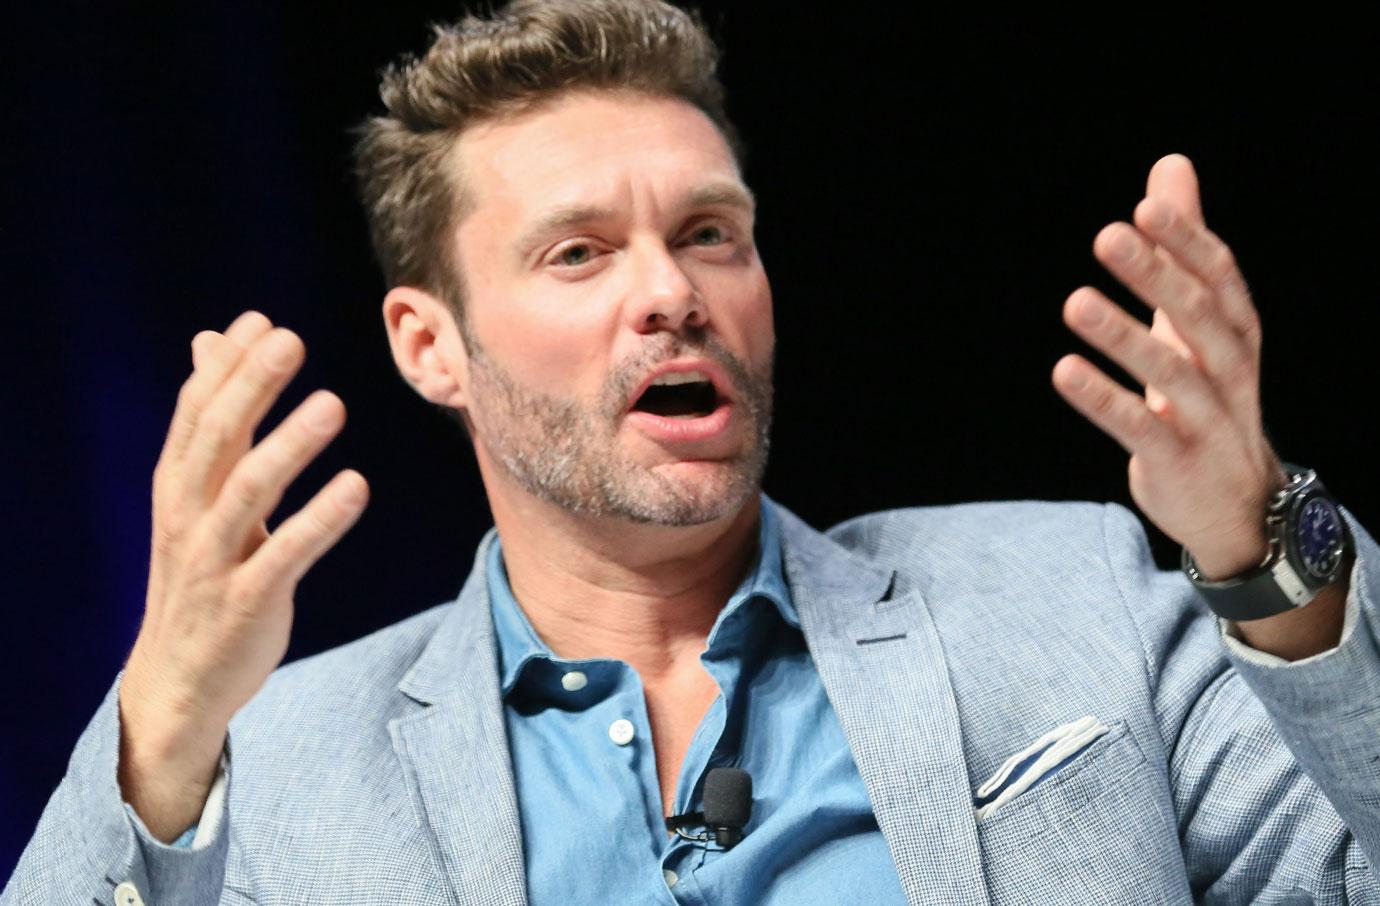 Ryan Seacrest NYC Move For Kelly Ripa Has Made Him Miserable